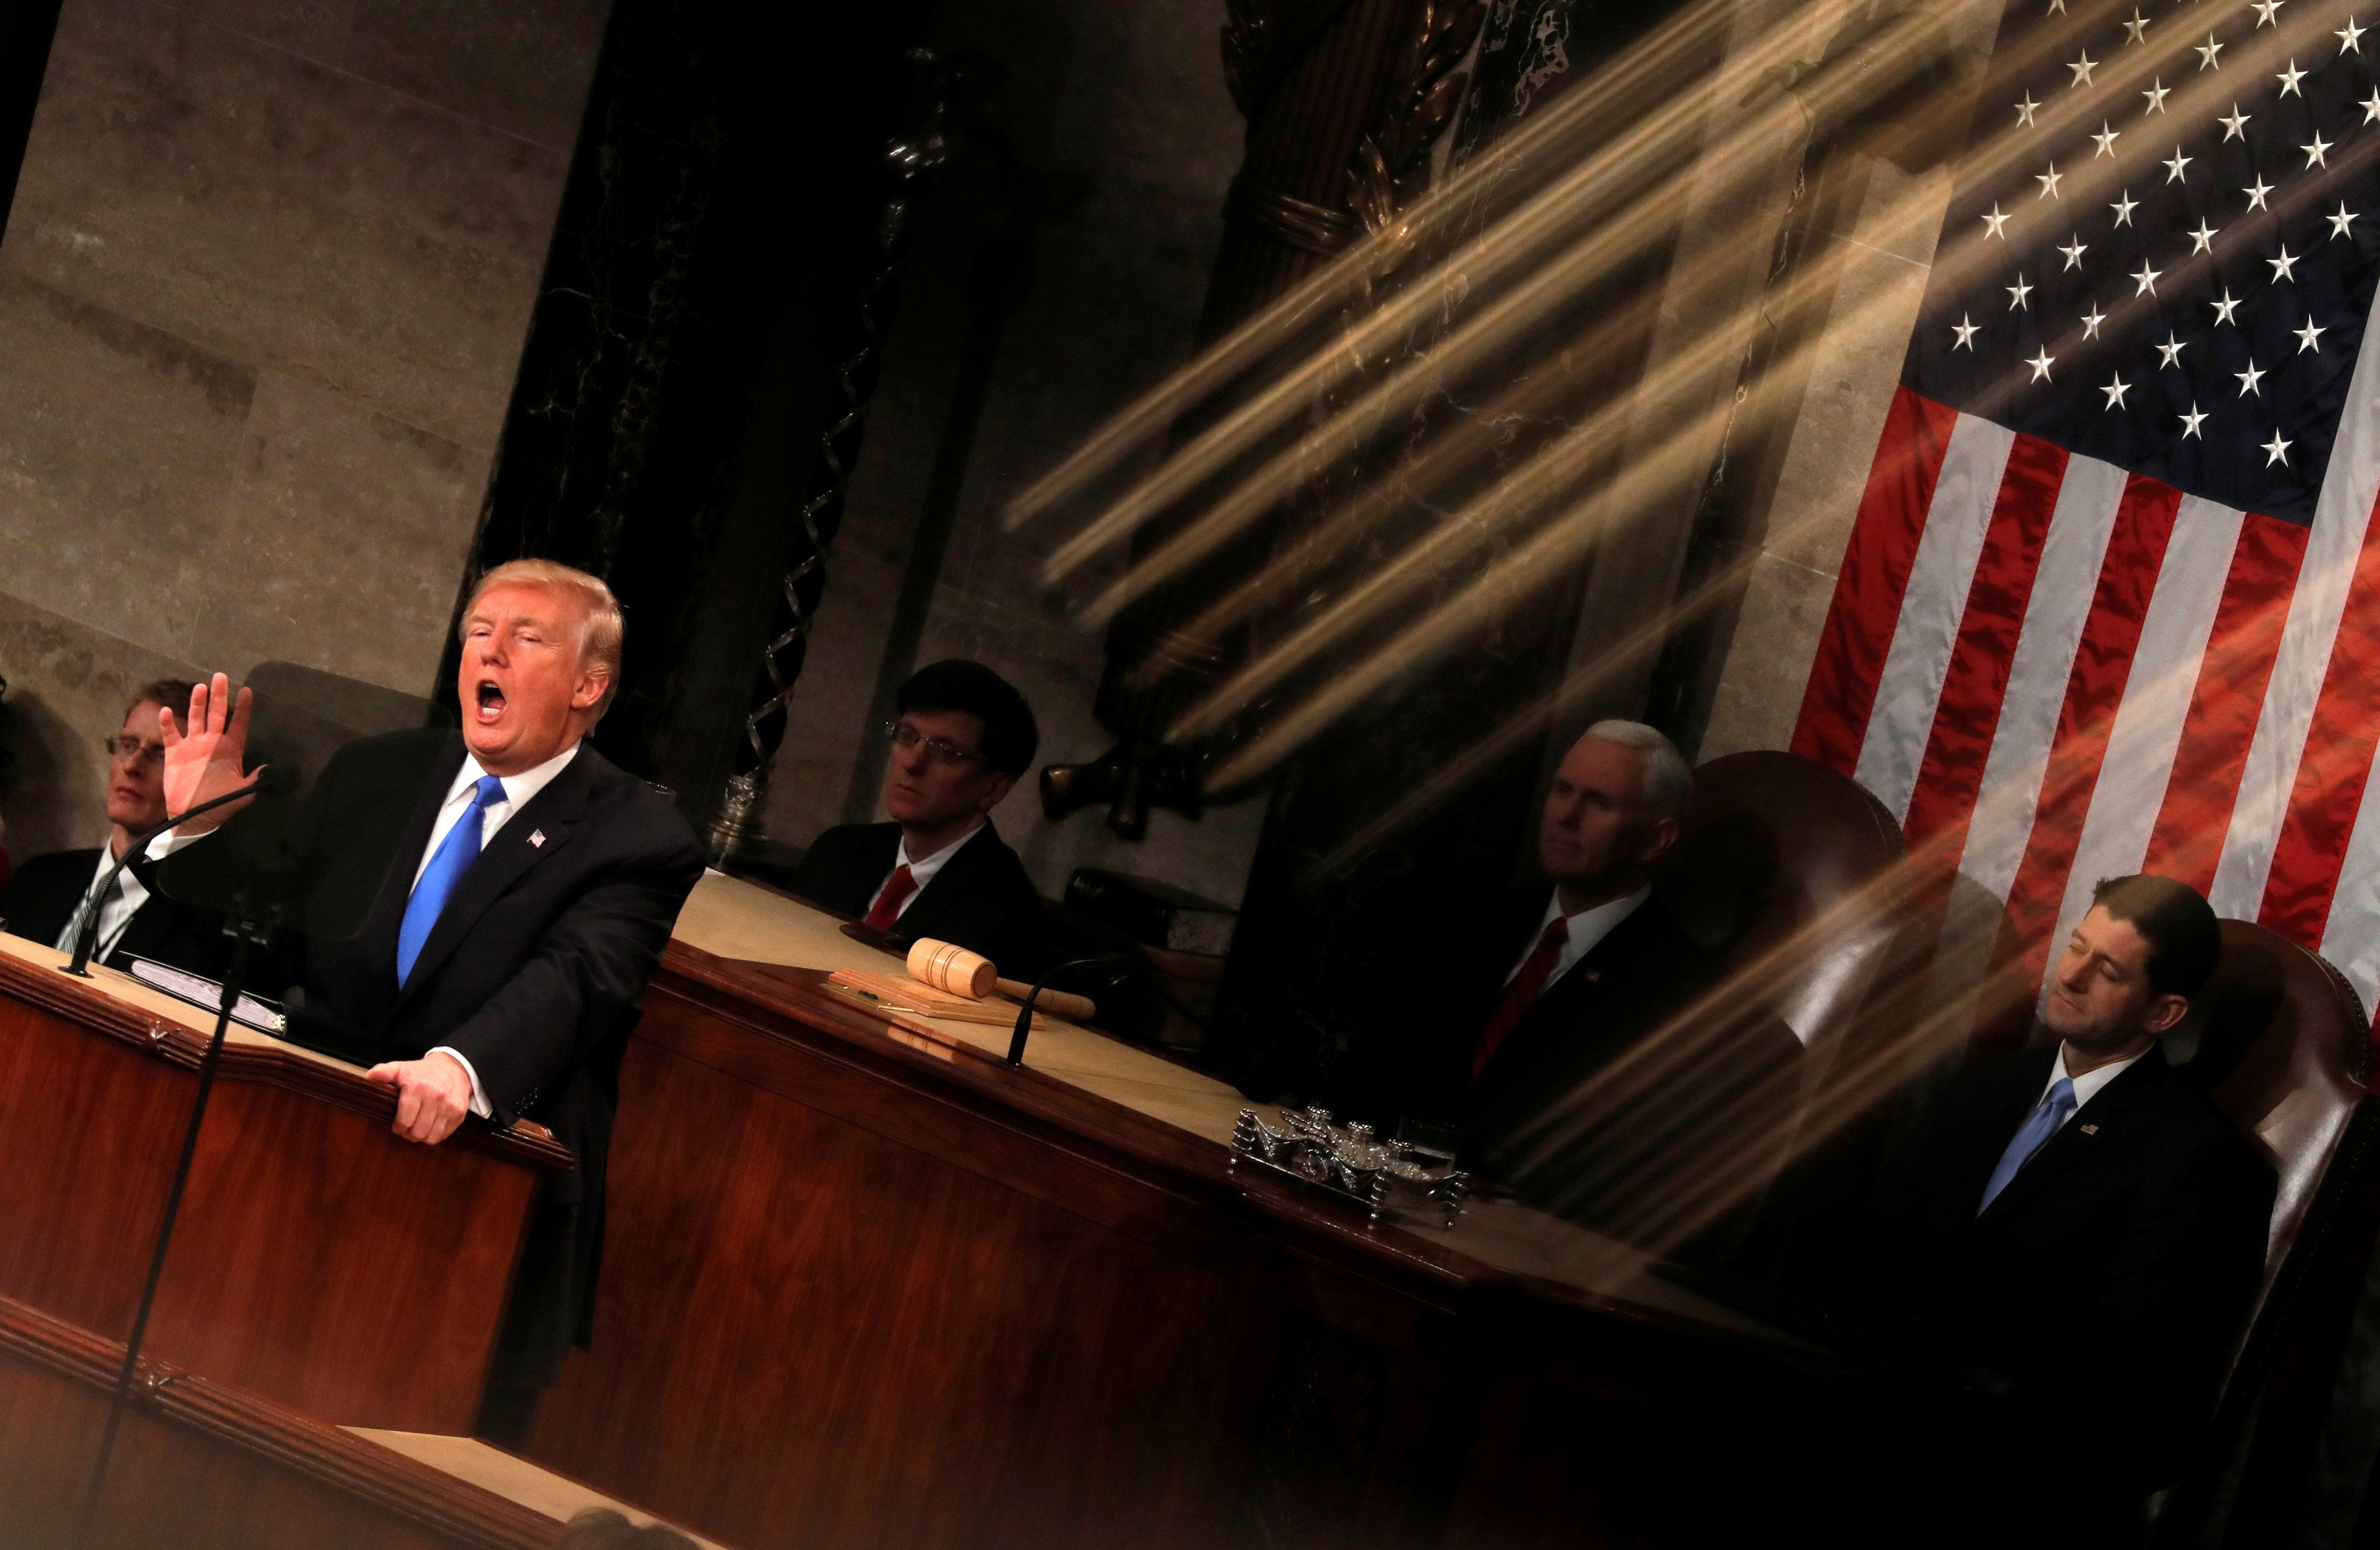 U.S. President Donald Trump and Vice President Mike Pence (C) are seen behind the reflection of a House chamber railing as Trump delivers his State of the Union address to a joint session of the U.S. Congress on Capitol Hill in Washington, U.S. January 30, 2018. REUTERS/Carlos Barria     TPX IMAGES OF THE DAY